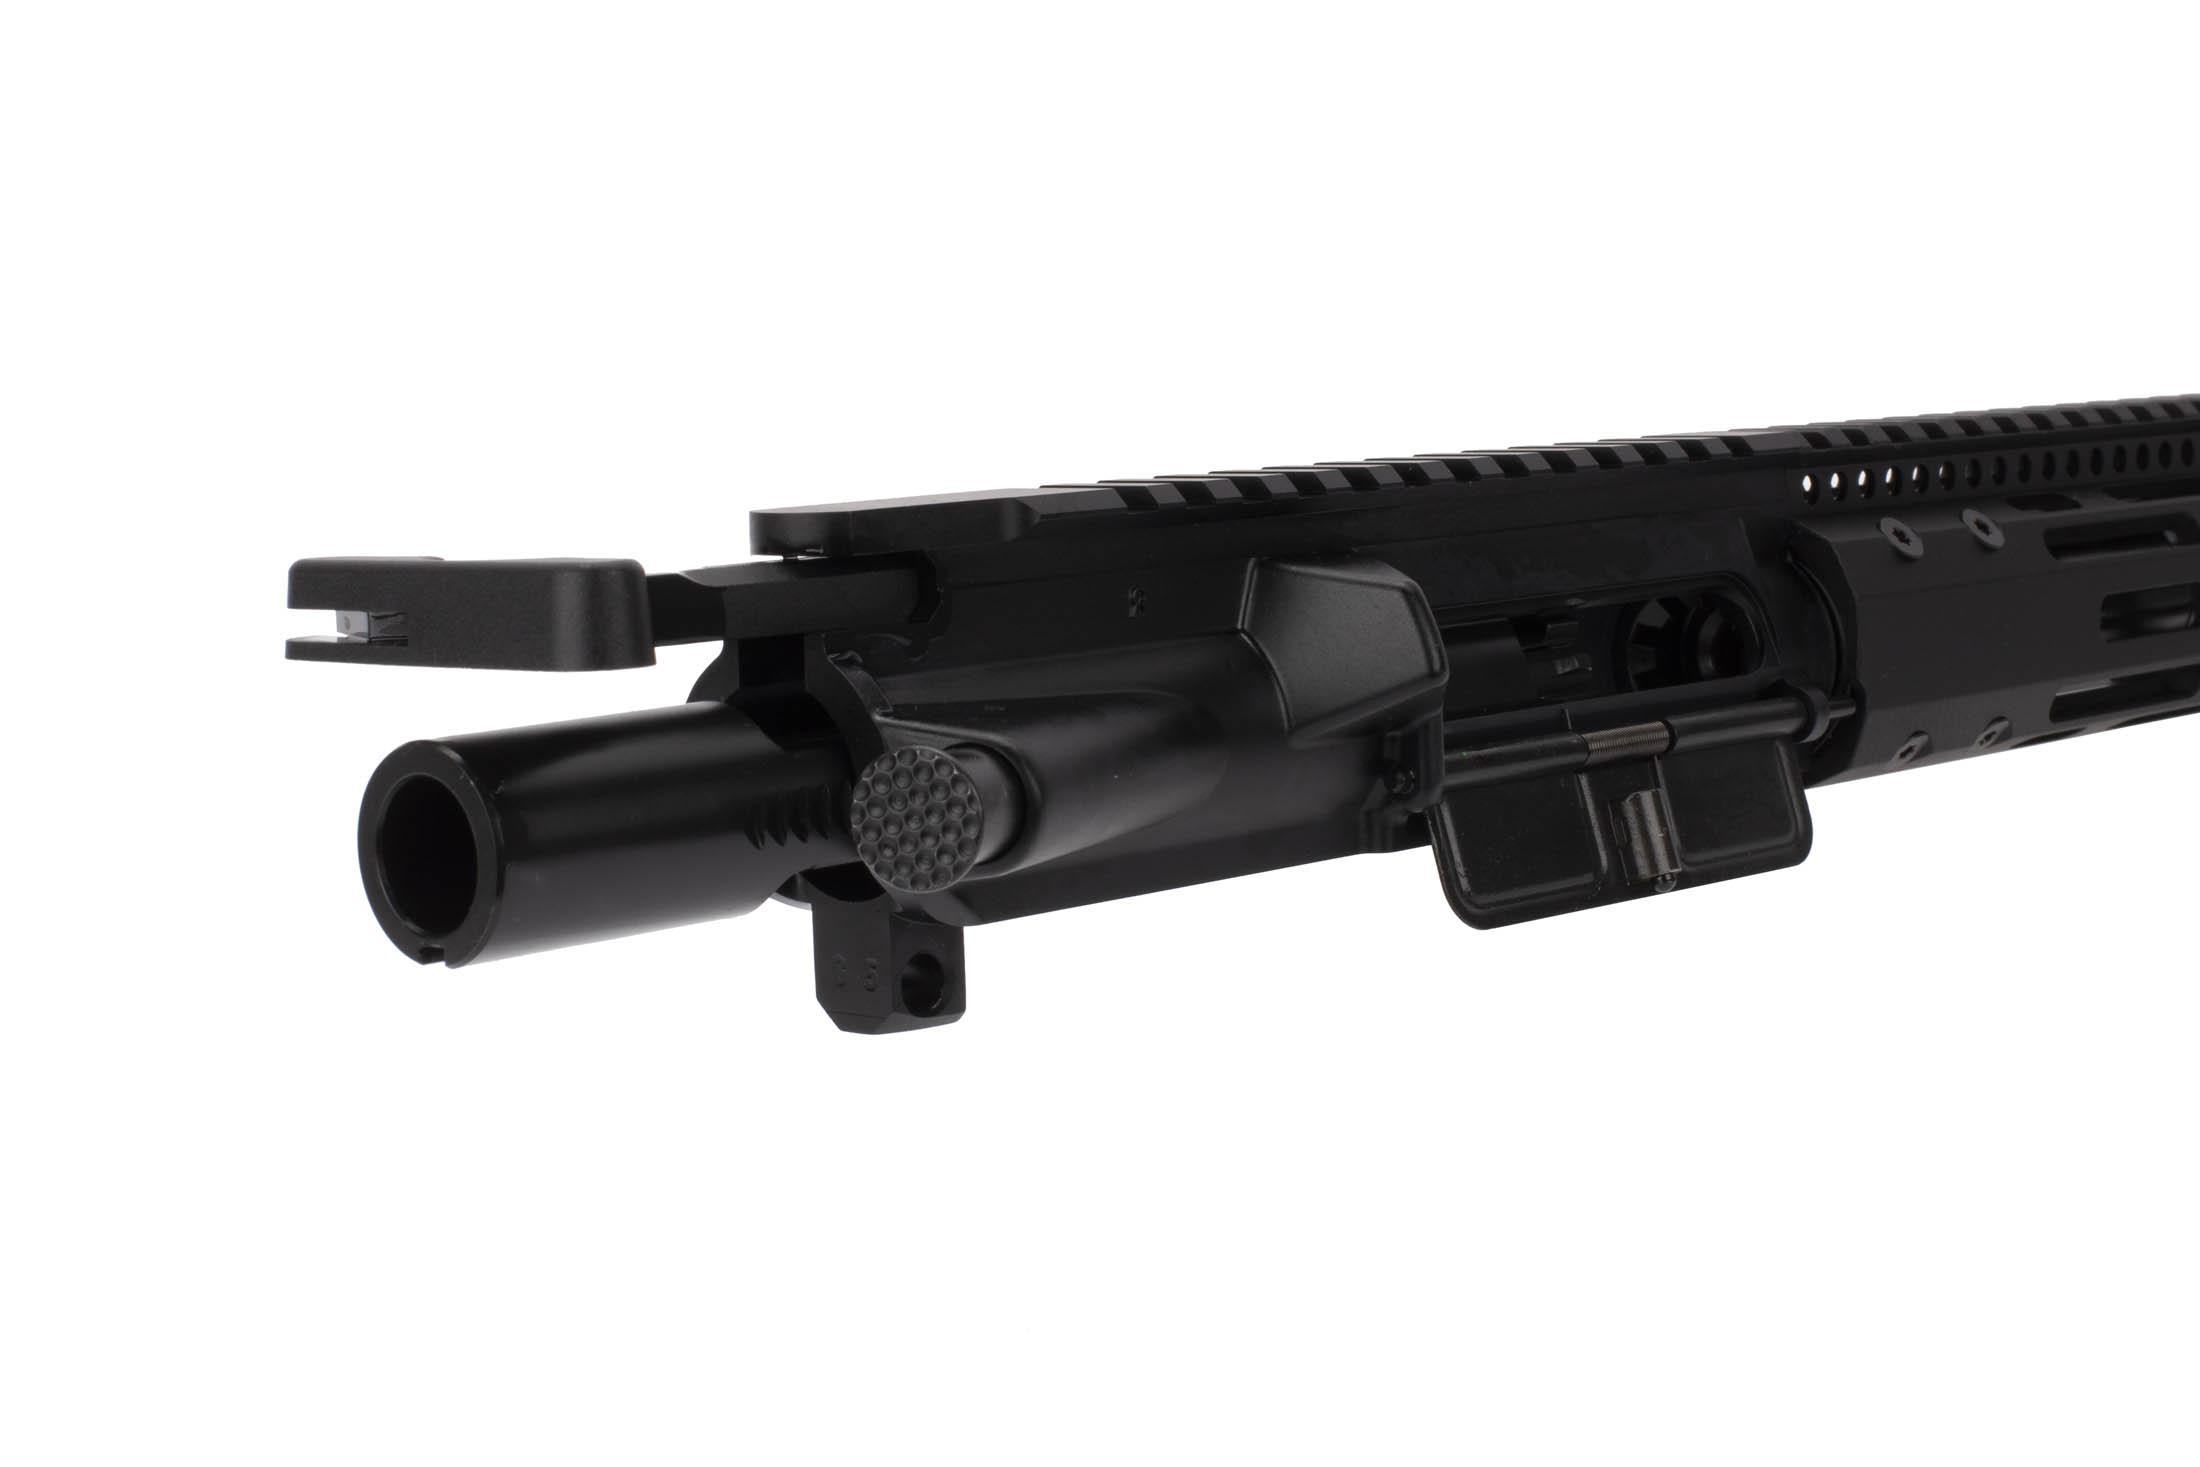 Radical Firearms 16in 300 BLK complete upper receiver for the AR-15 includes an M16 cut bolt carrier group.